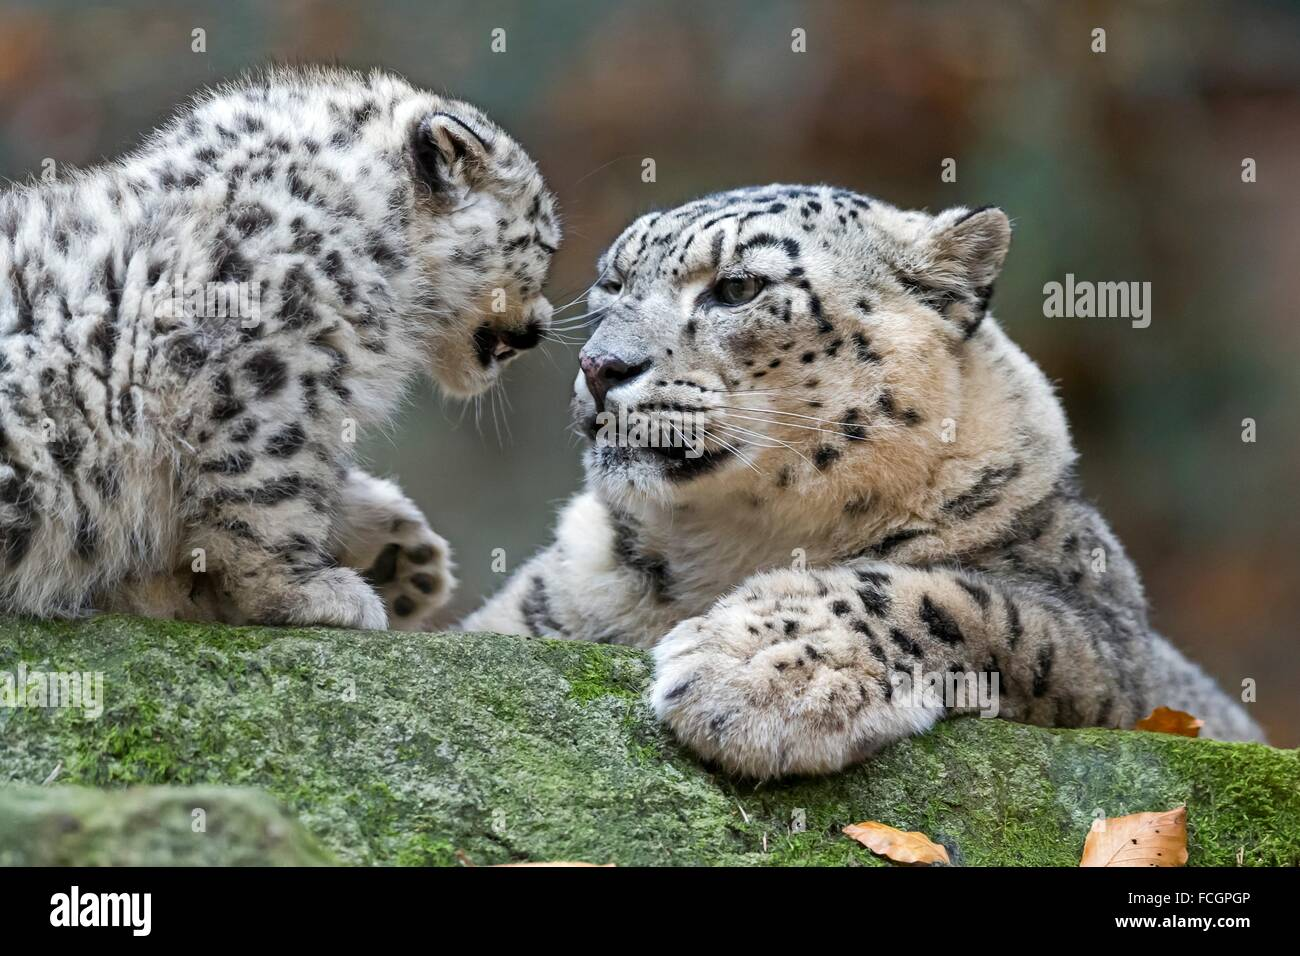 Snow Leopard, (Uncia uncia), young animals, captive, Germany - Stock Image